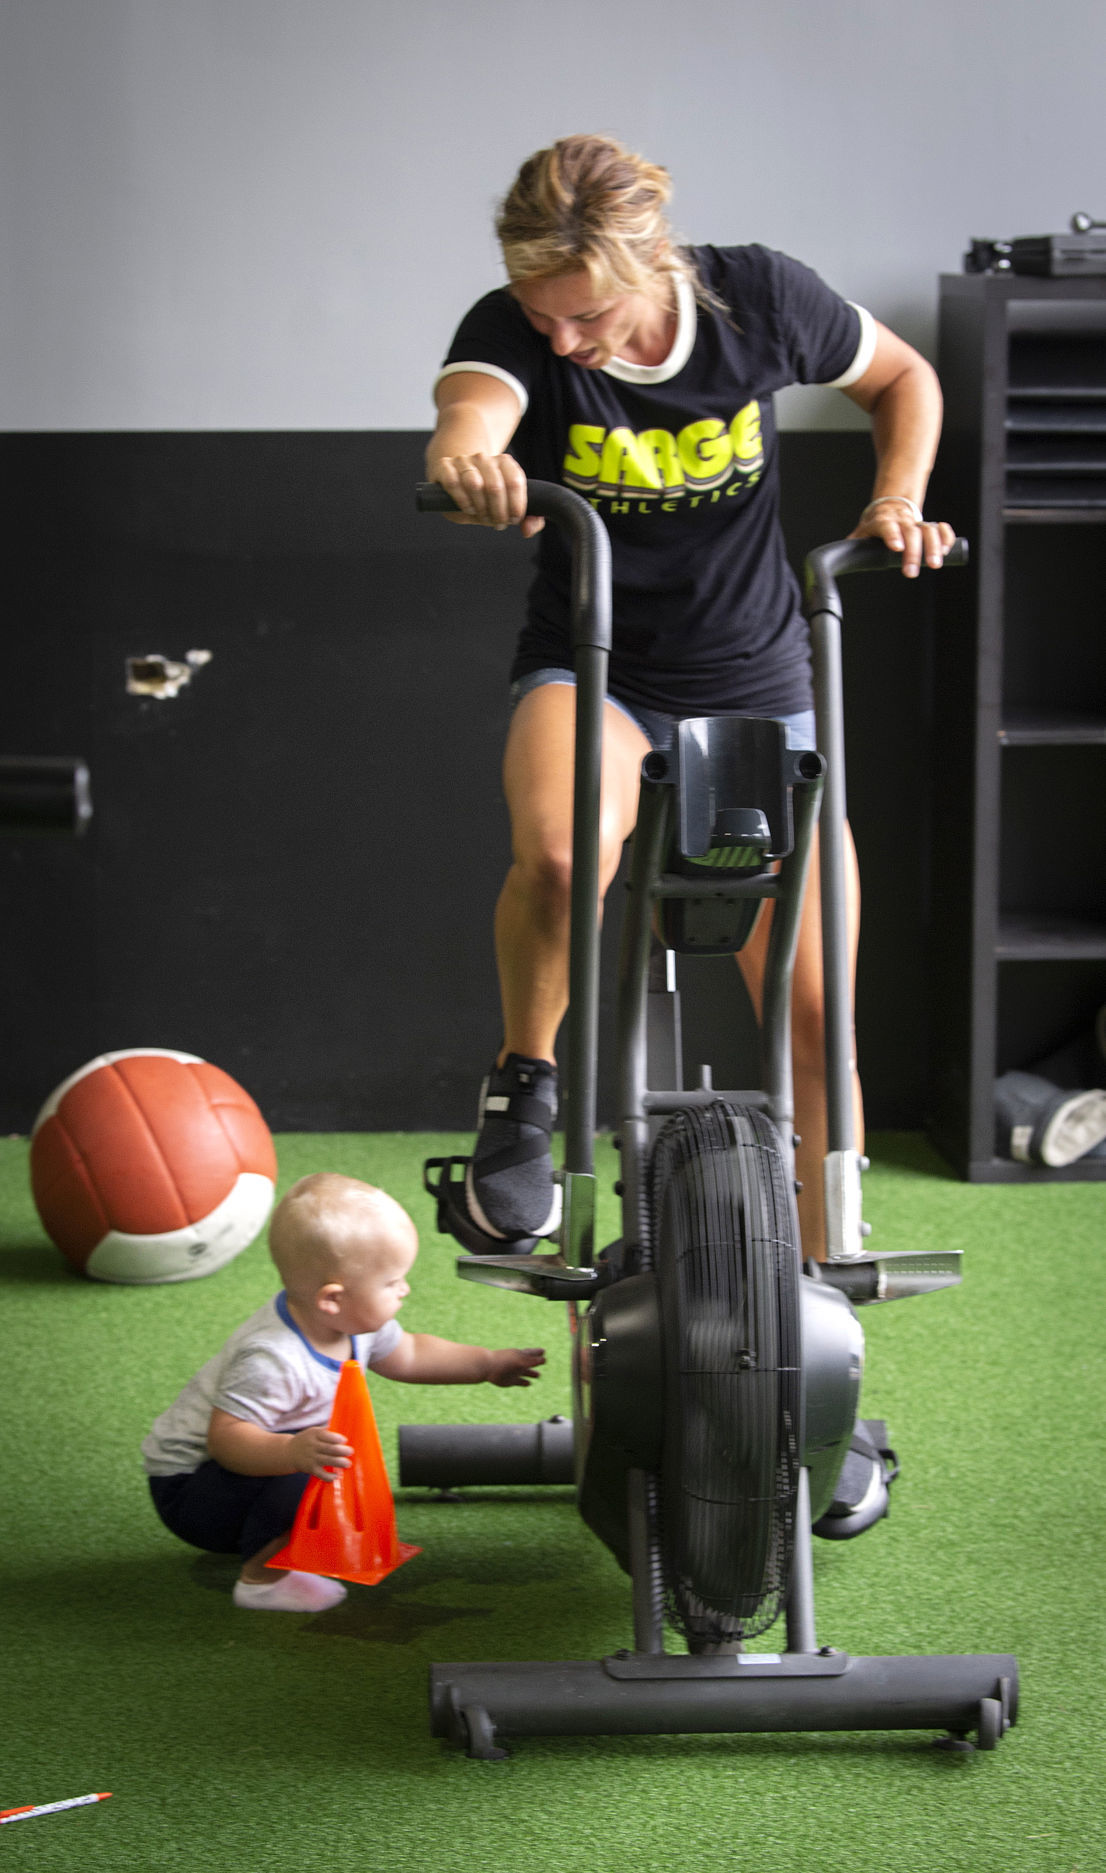 Sarge Athletics throws end-of-summer workout bash | Fitness